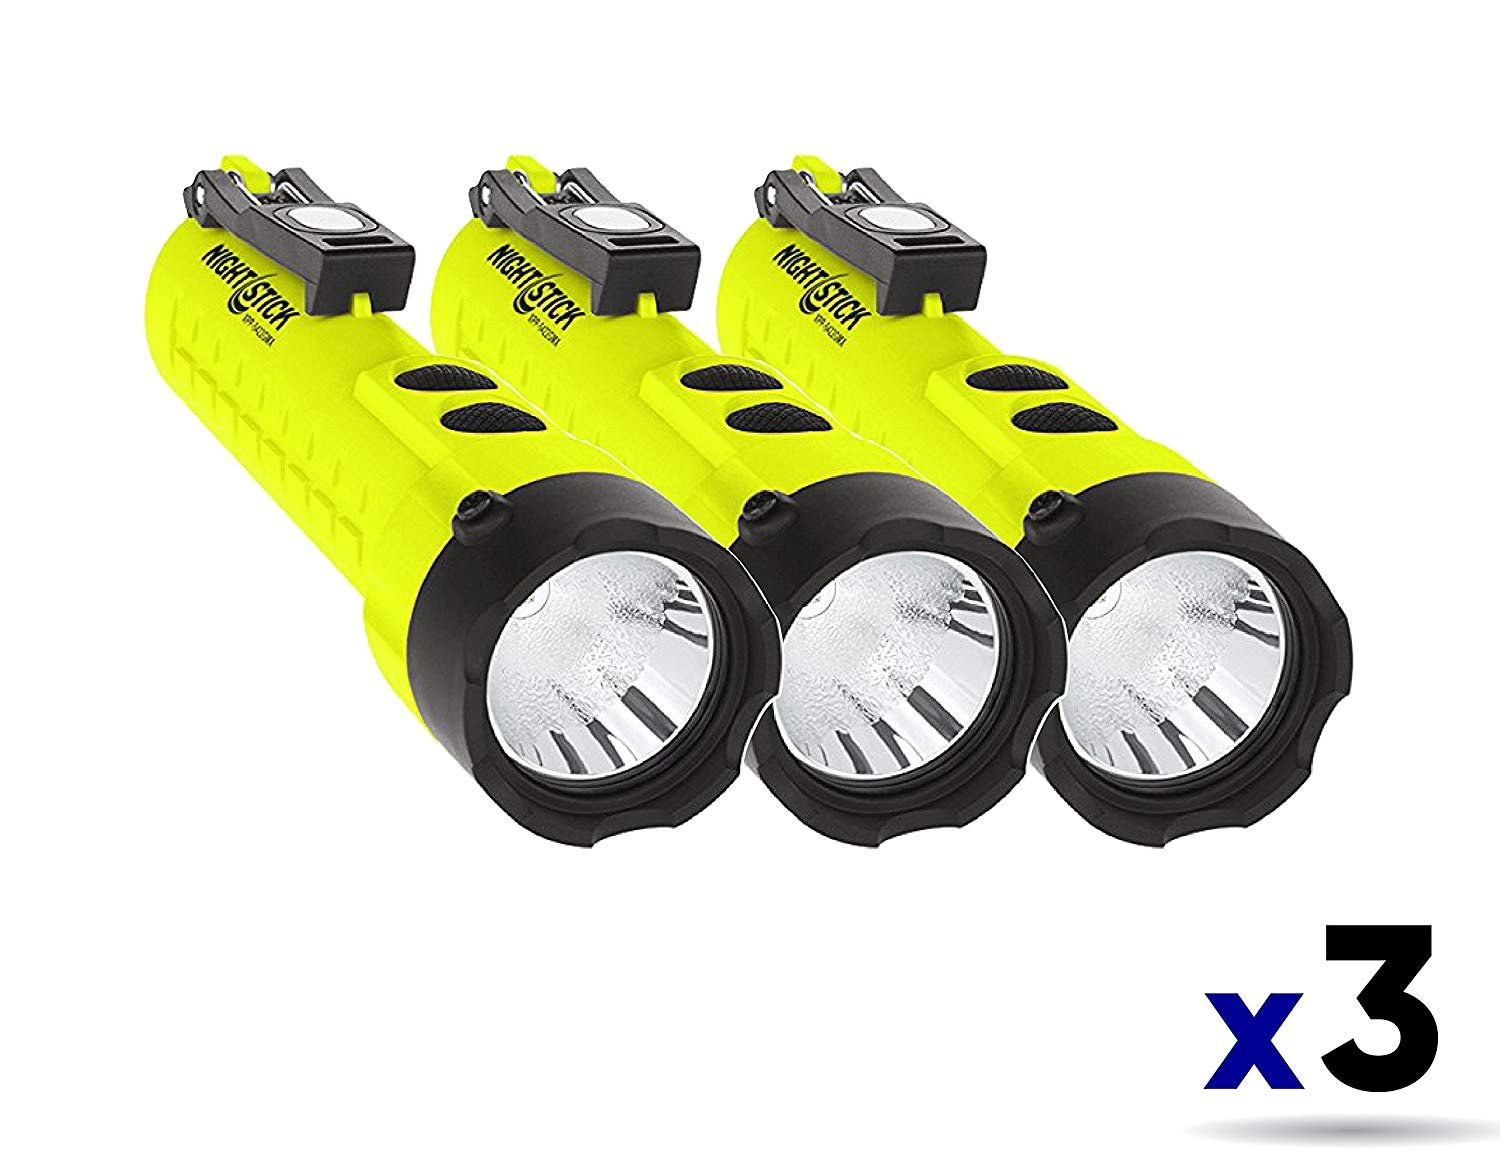 Nightstick XPP-5422GMX X-Series Intrinsically Safe Dual-Light Flashlight with Dual Magnets Green/Black (3 Pack)